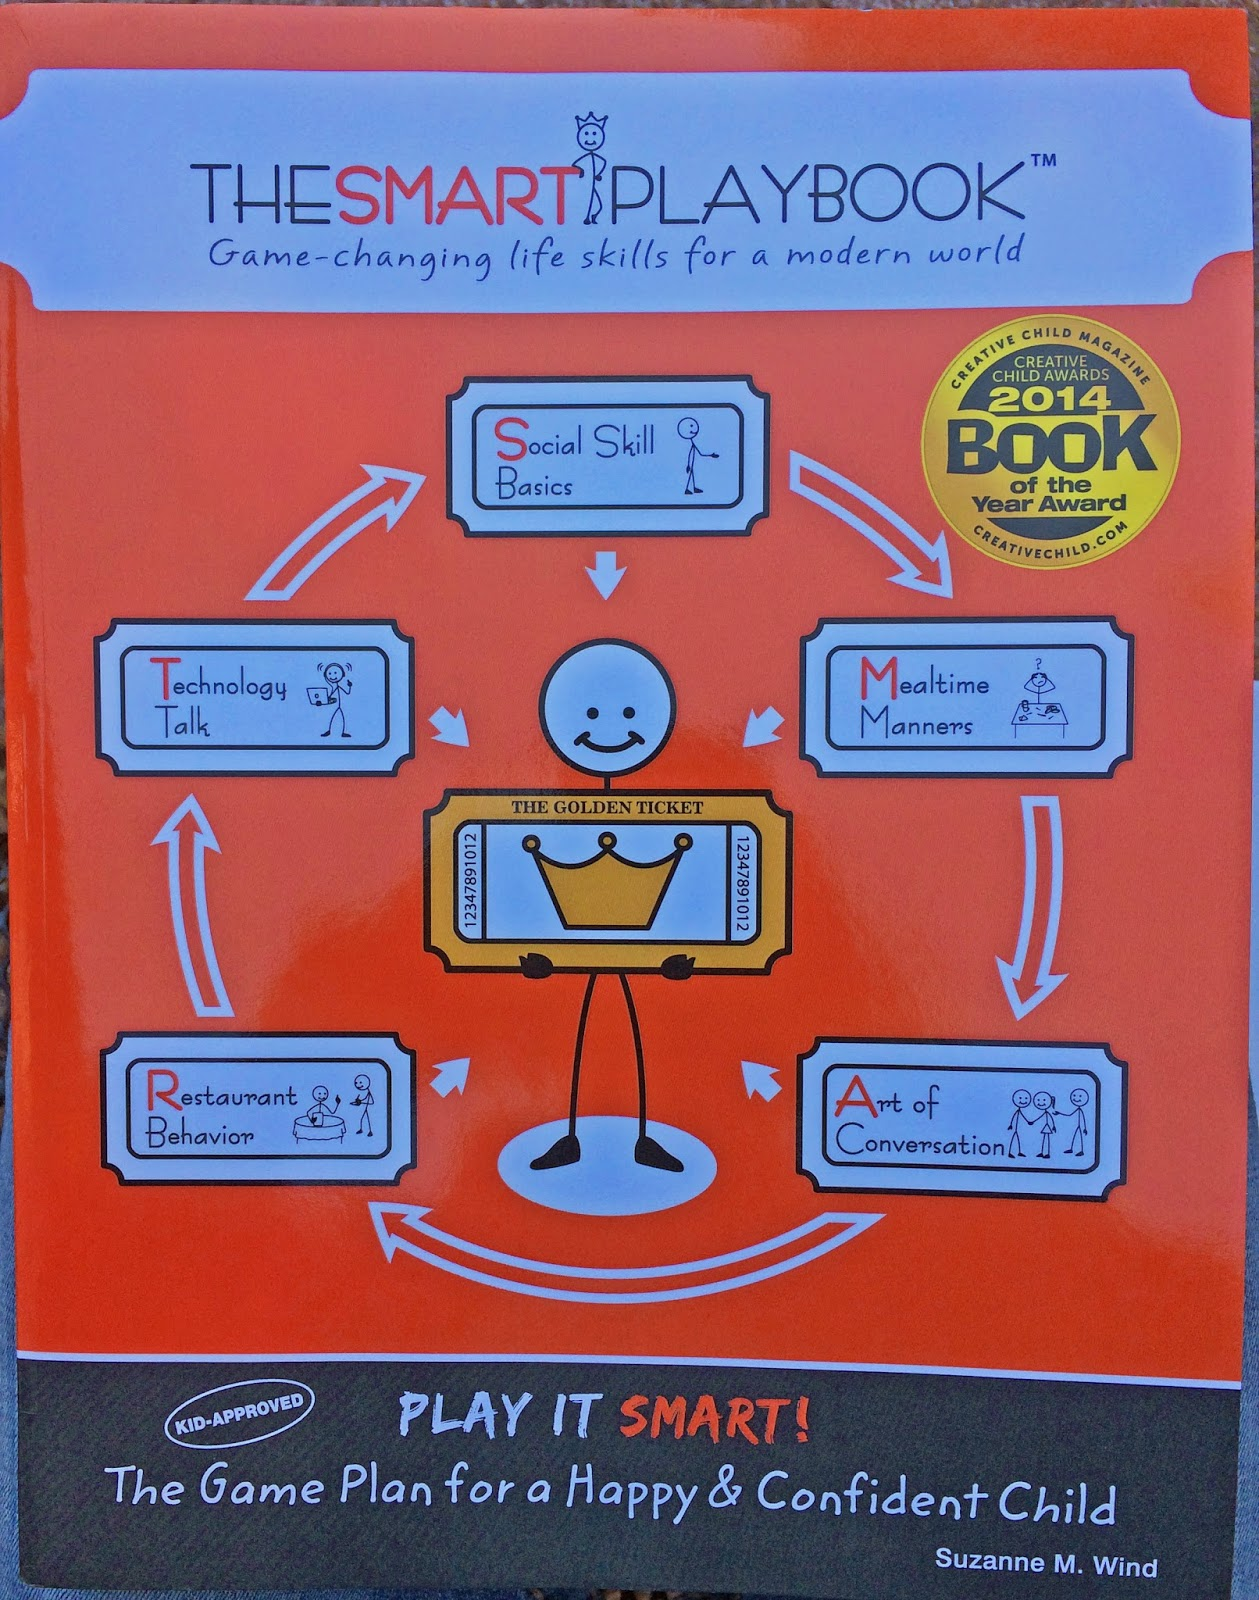 #thesmartplaybook #book #review social skills and manners